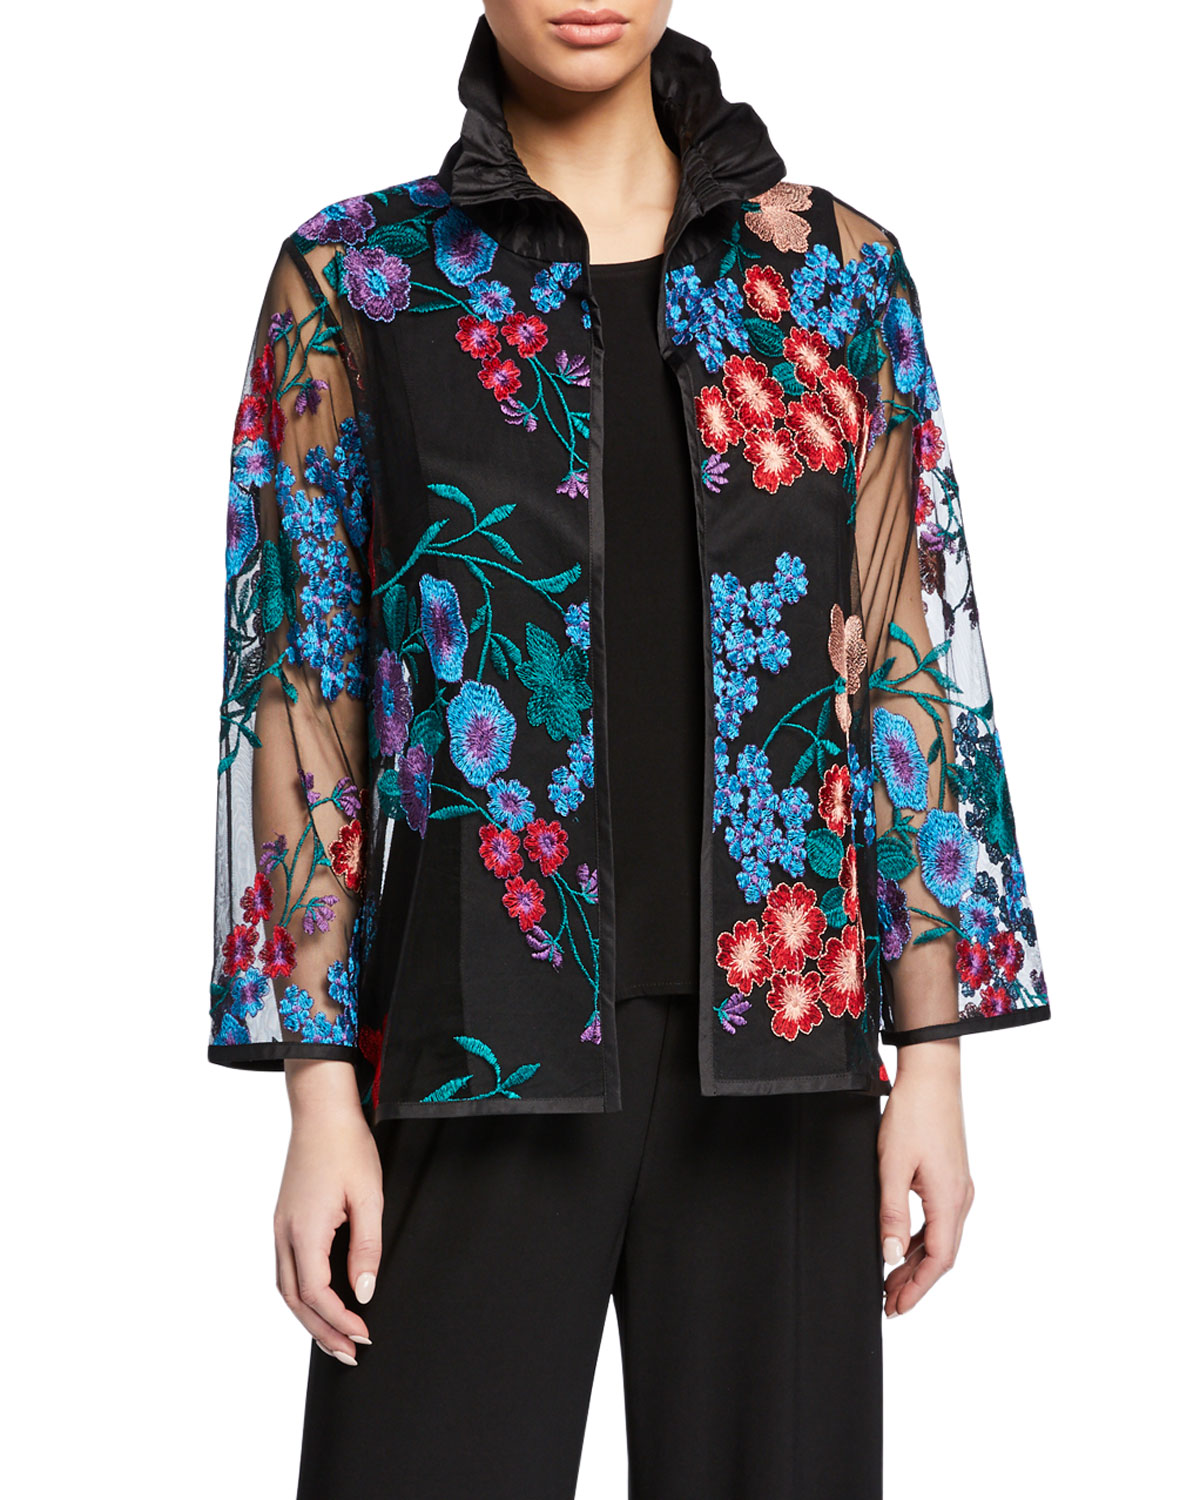 Texas Tech Classic Elegance Ladies Ring: Caroline Rose Plus Size Fresh Flower Embroidery Jacket